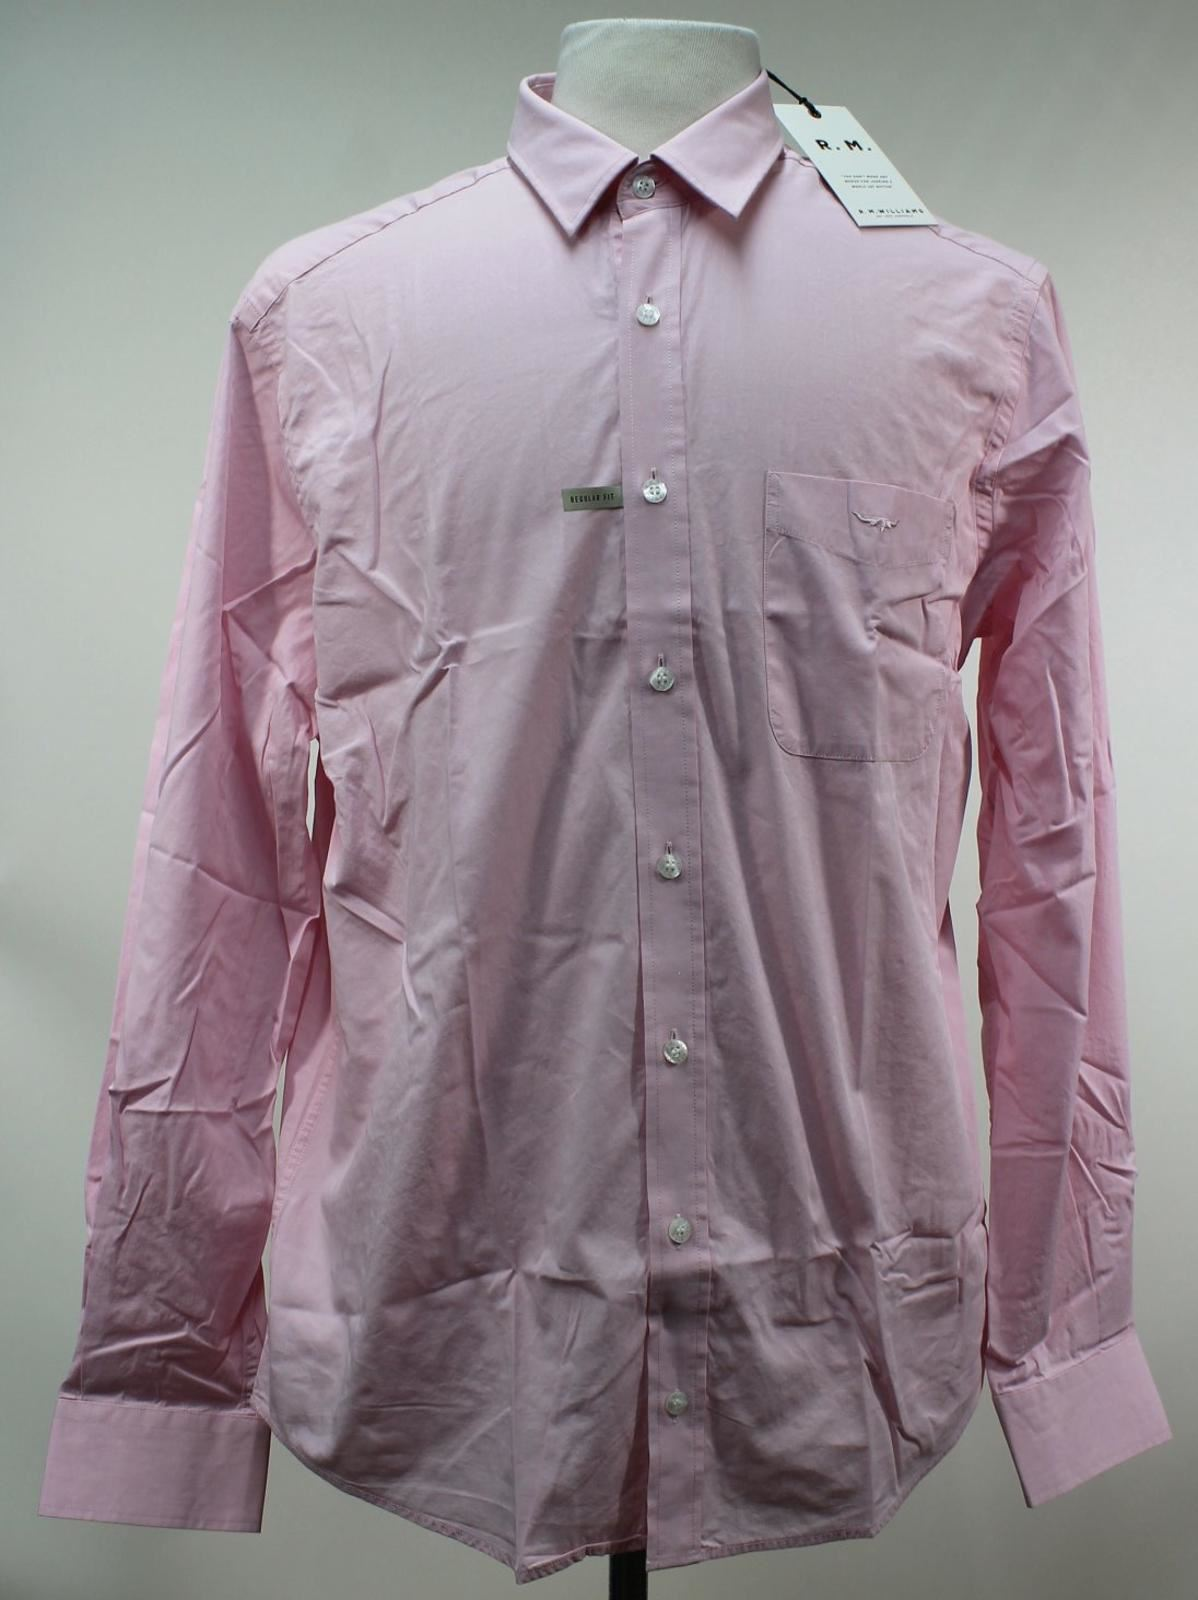 BNWT R. M. WILLIAMS Men's Pink Cotton Long Sleeved Collared Shirt Size L